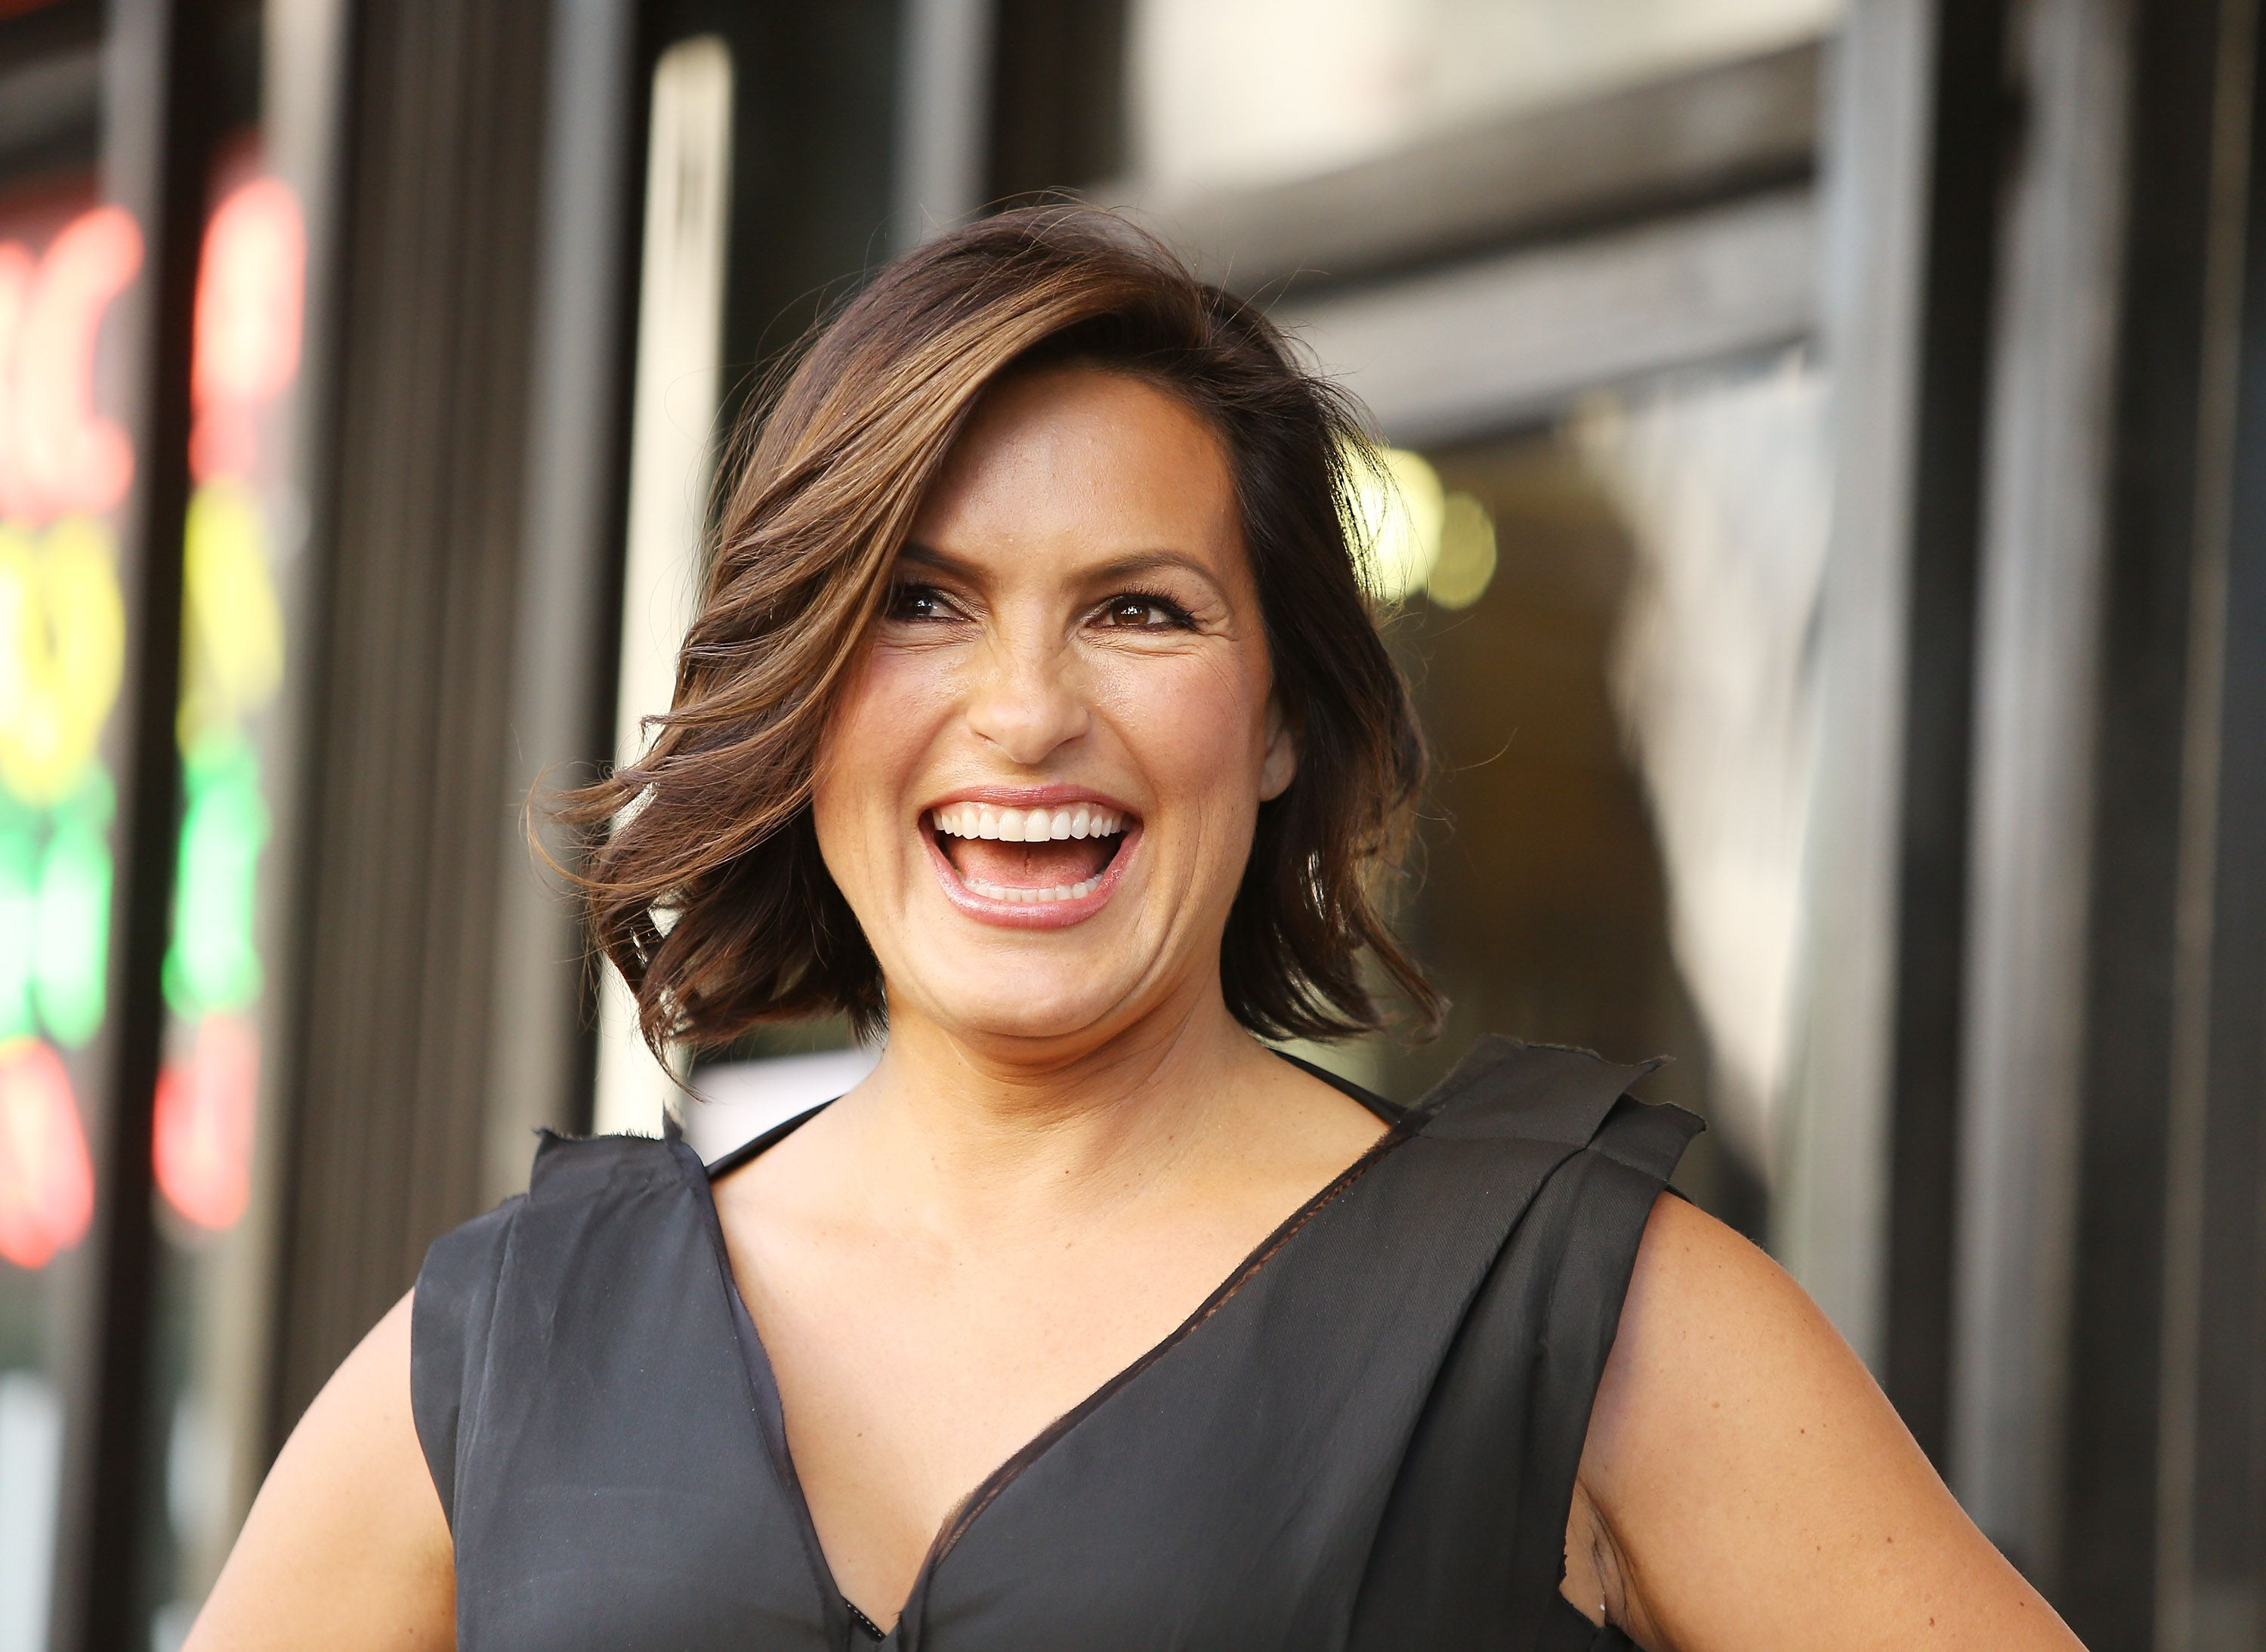 Mariska Hargitay attends the ceremony honoring her with a Star on The Hollywood Walk of Fame in 2013 Source: Getty Images